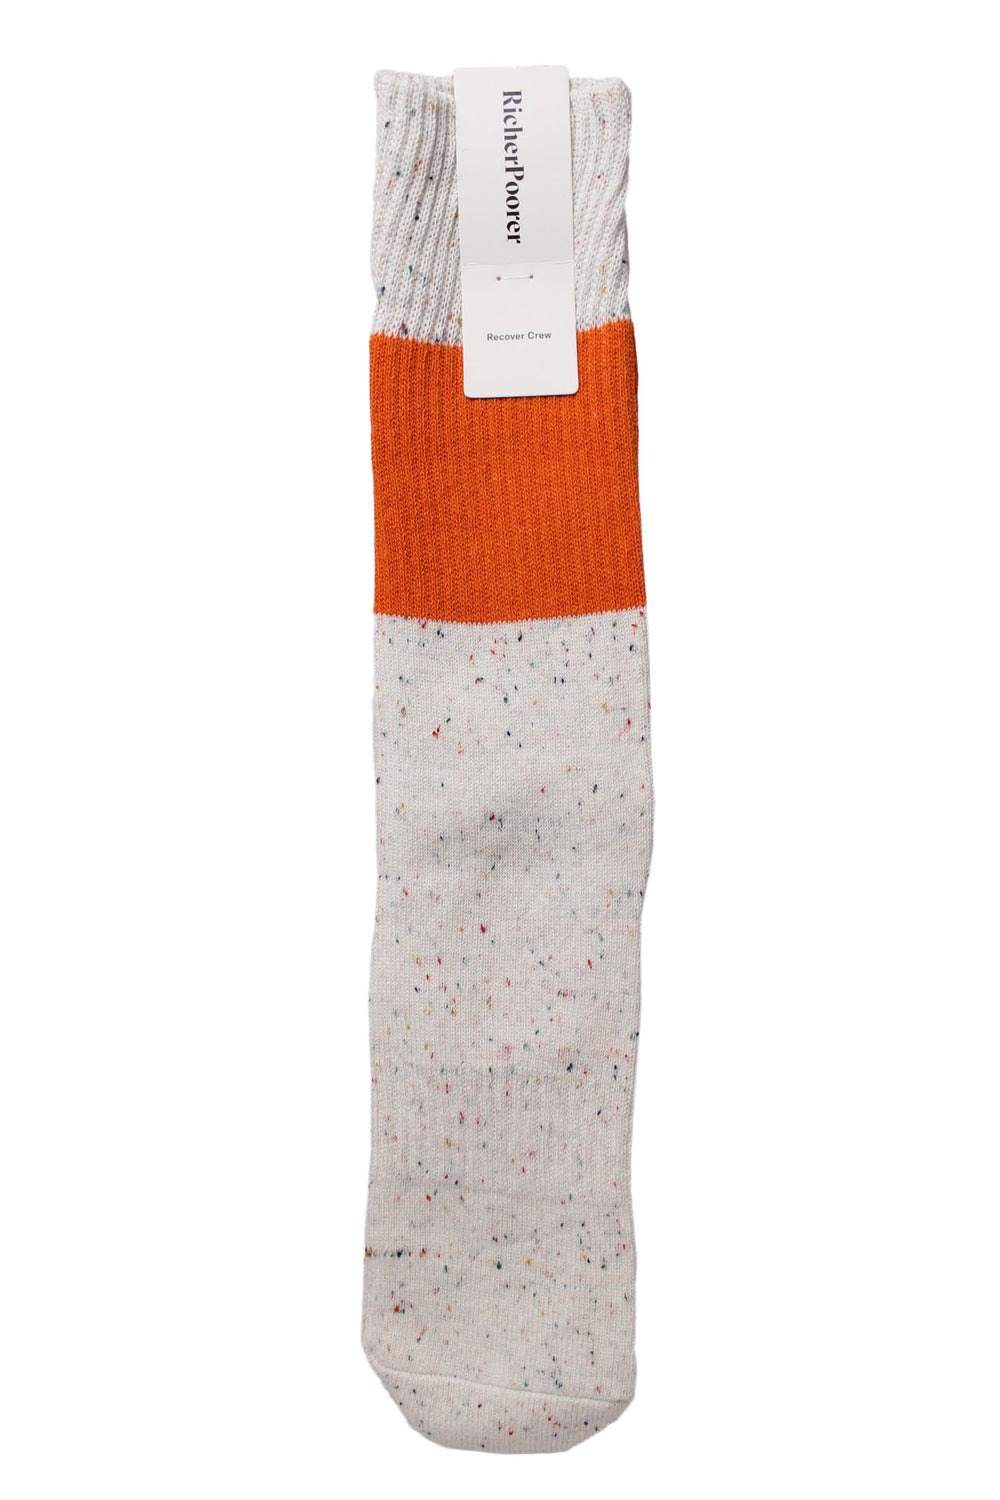 off-white speckled crew sock by richer poorer.